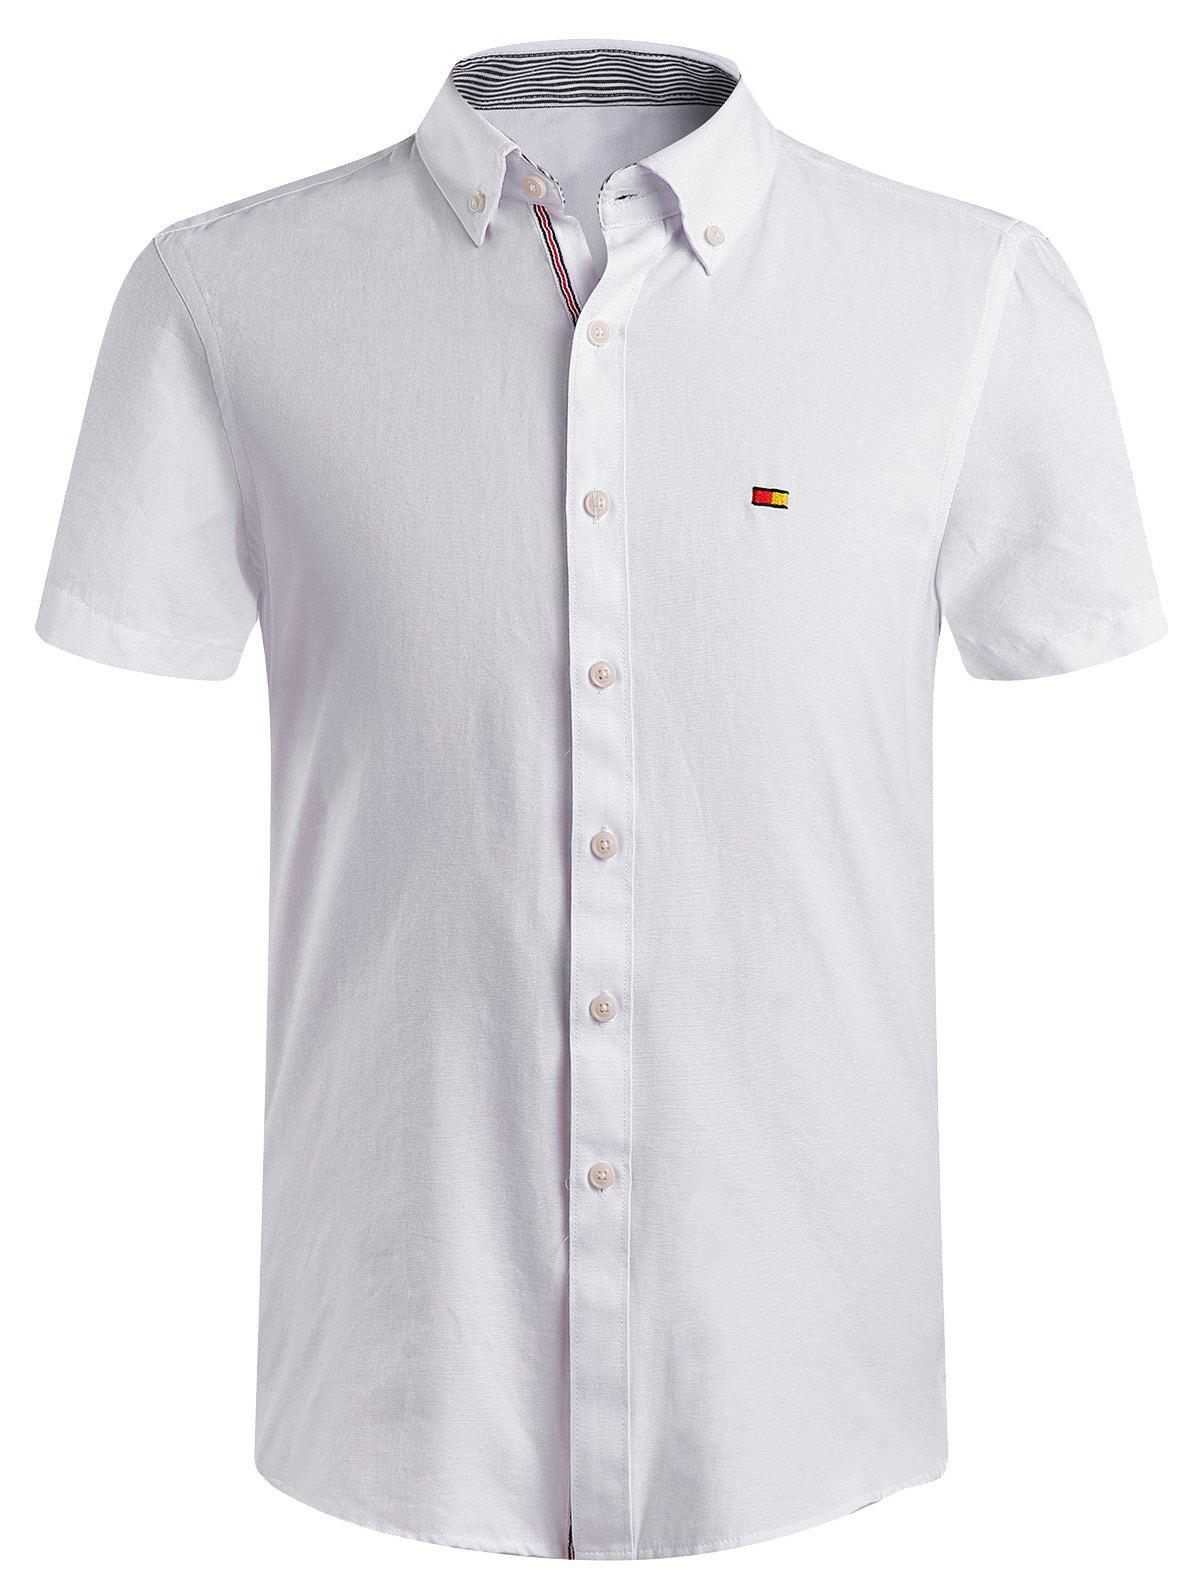 Men's Fashion Solid Color Button-Down Shirt - WHITE 4XL